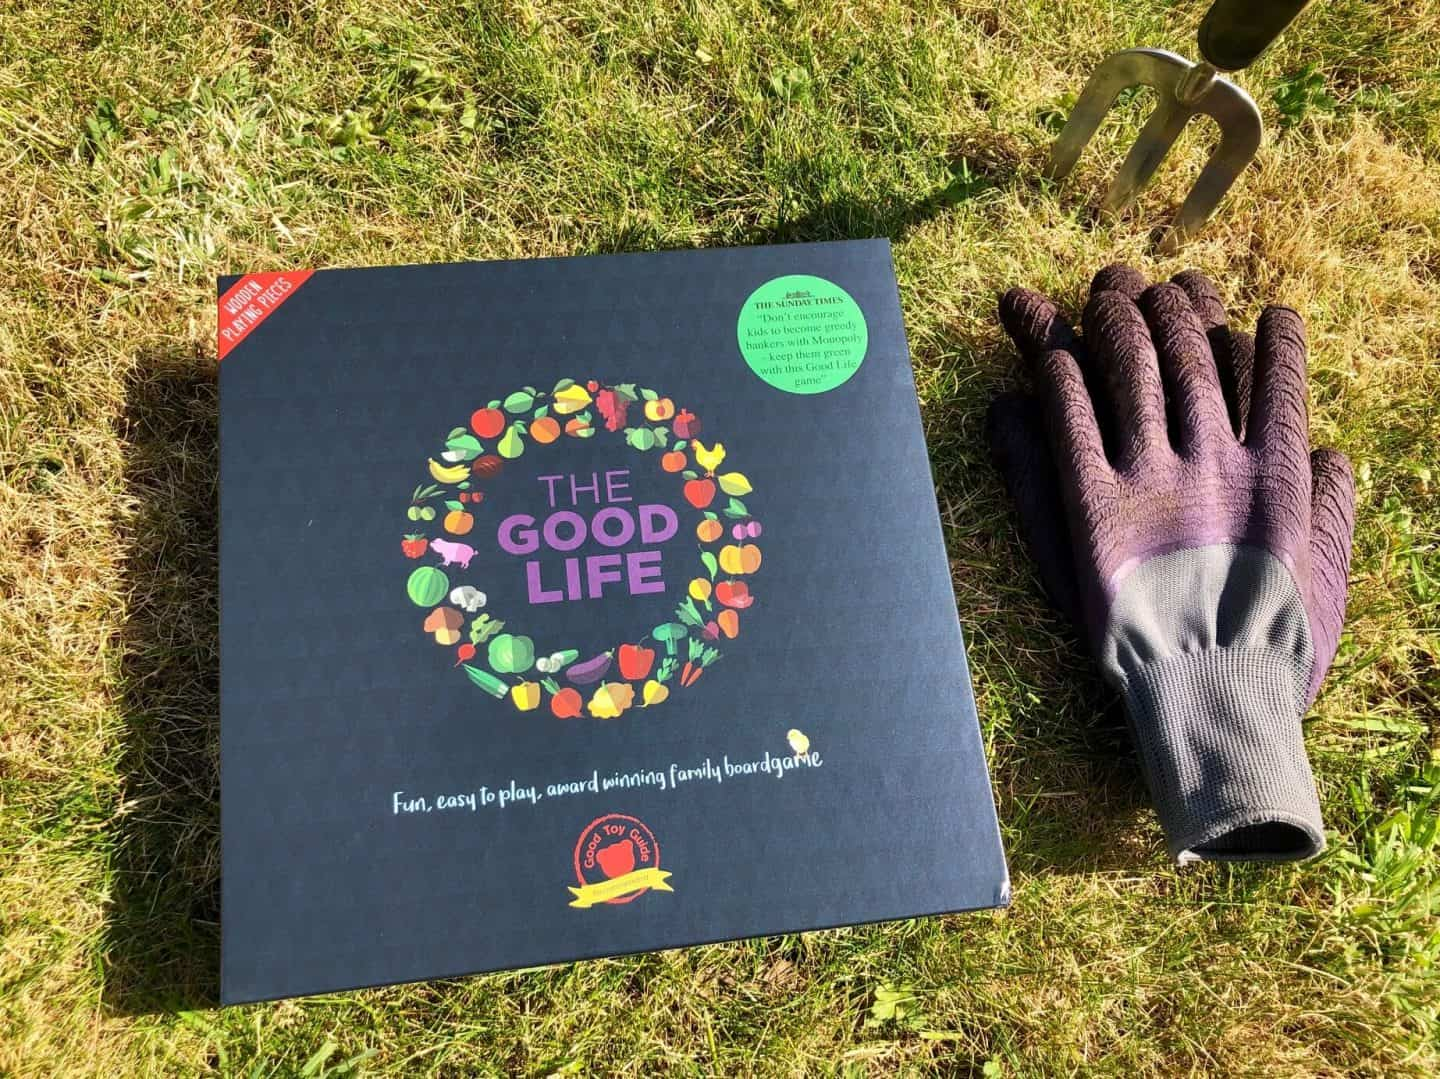 The Good Life Board Game Review and Giveaway